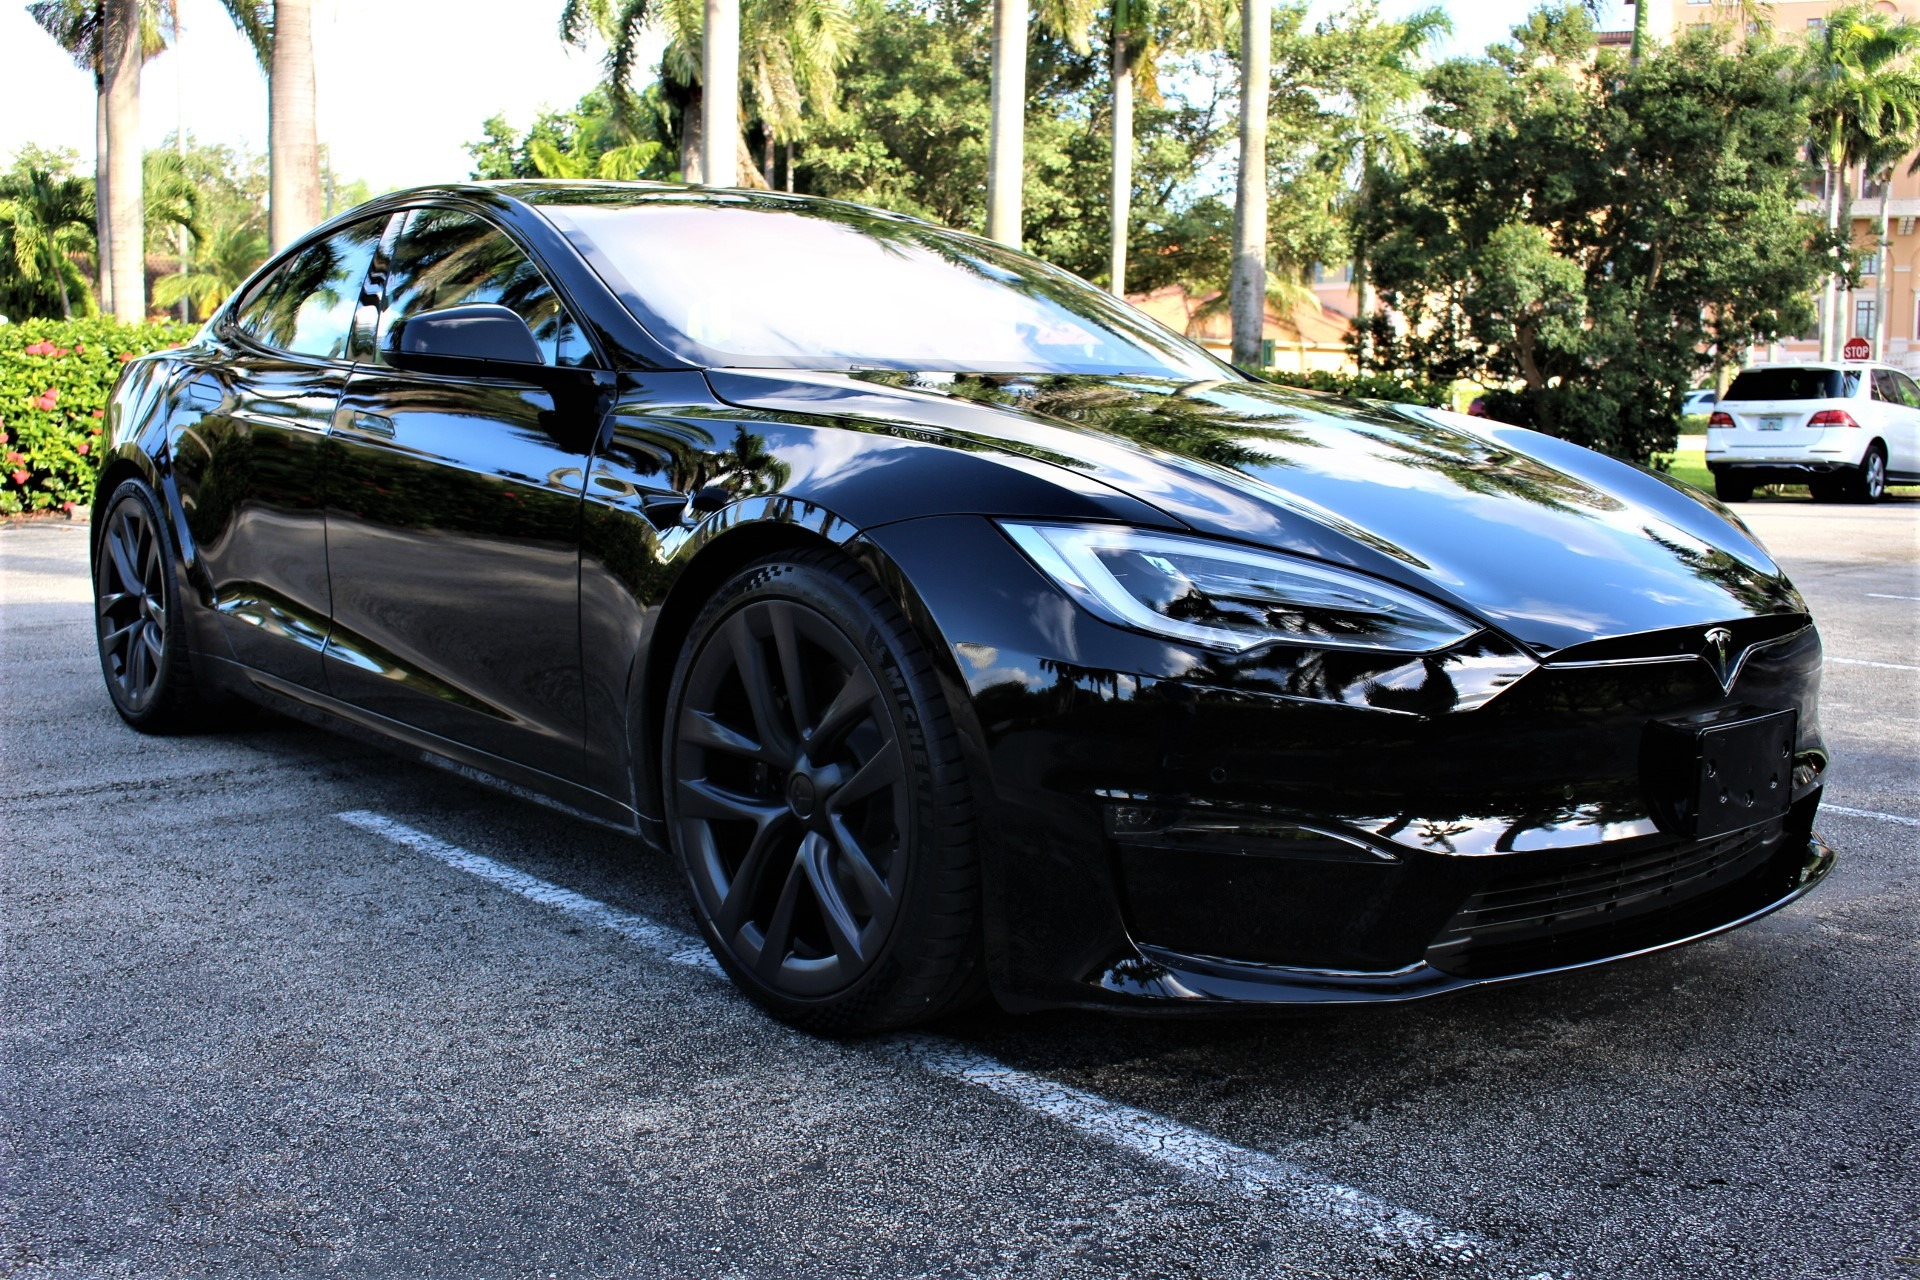 Used 2021 Tesla Model S Plaid for sale $148,850 at The Gables Sports Cars in Miami FL 33146 4